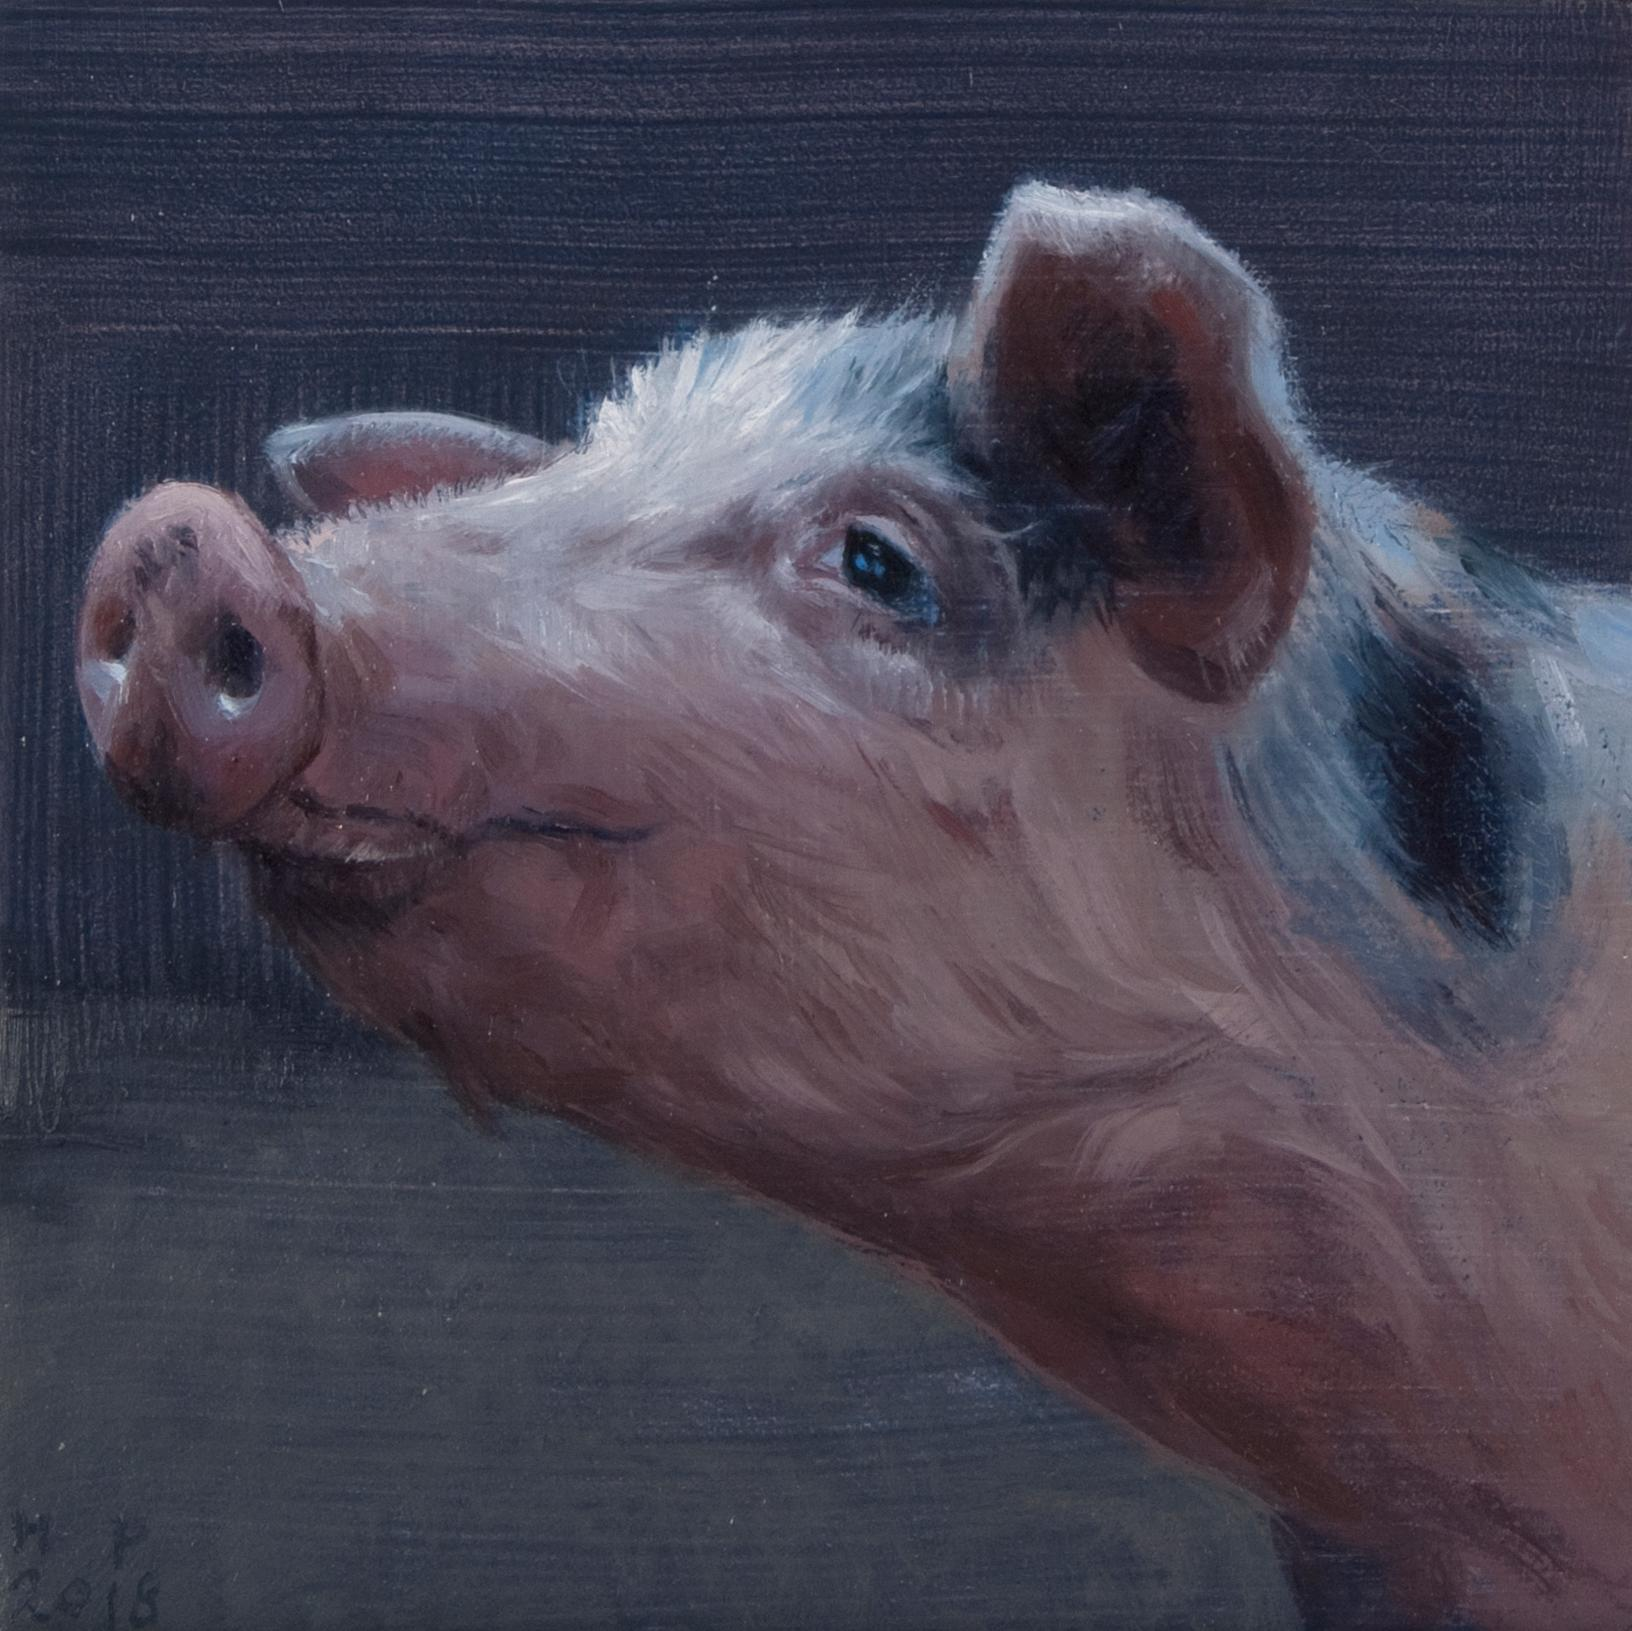 Small Pig's head- 21st Century Contemporary Animal Painting of a Pig